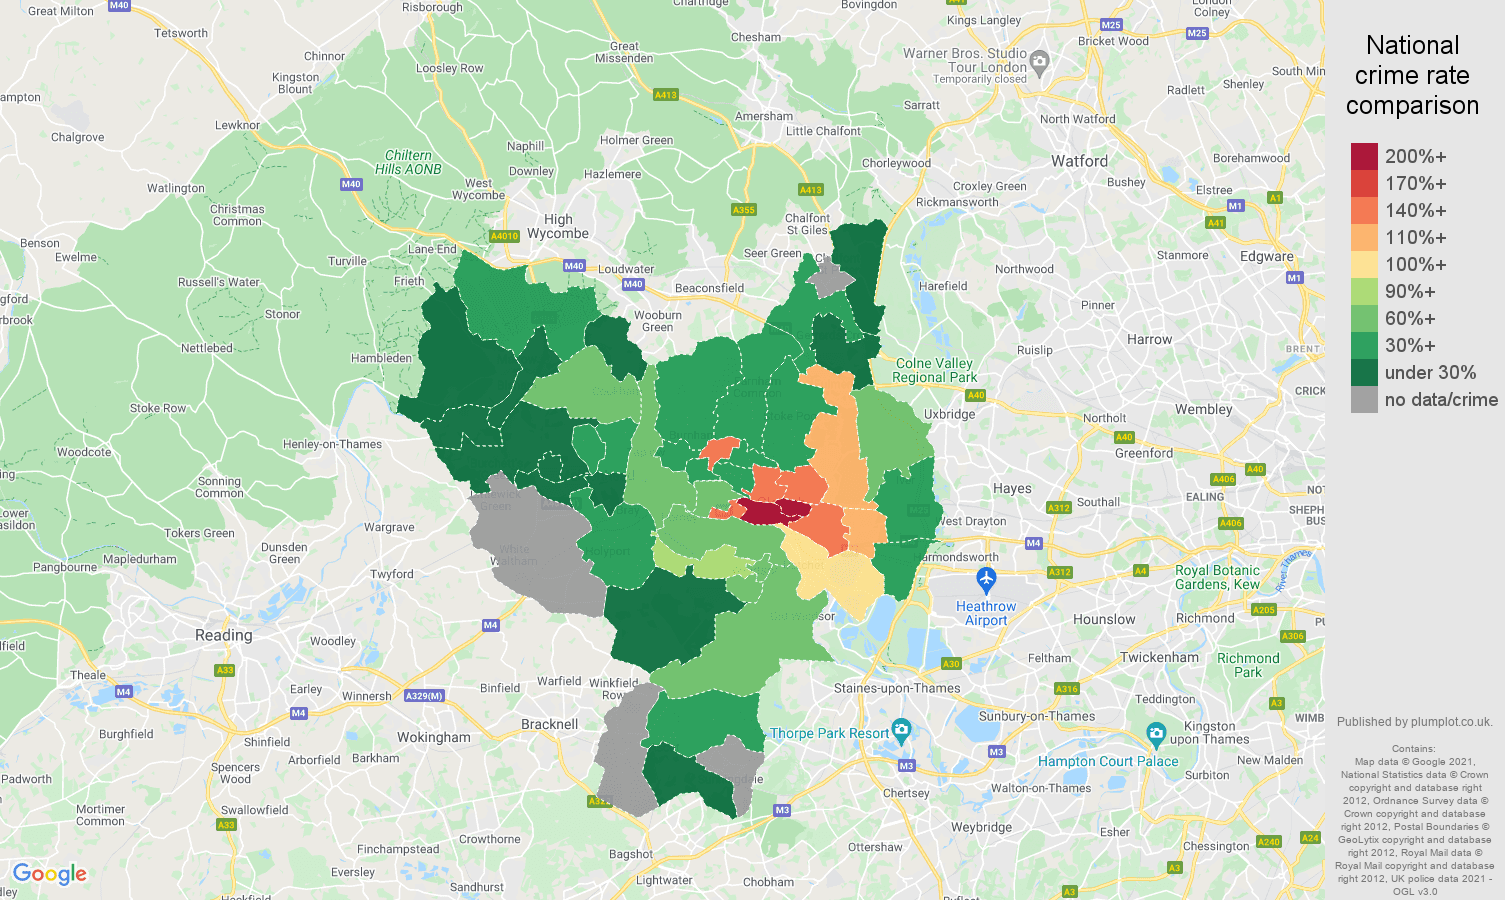 Slough robbery crime rate comparison map